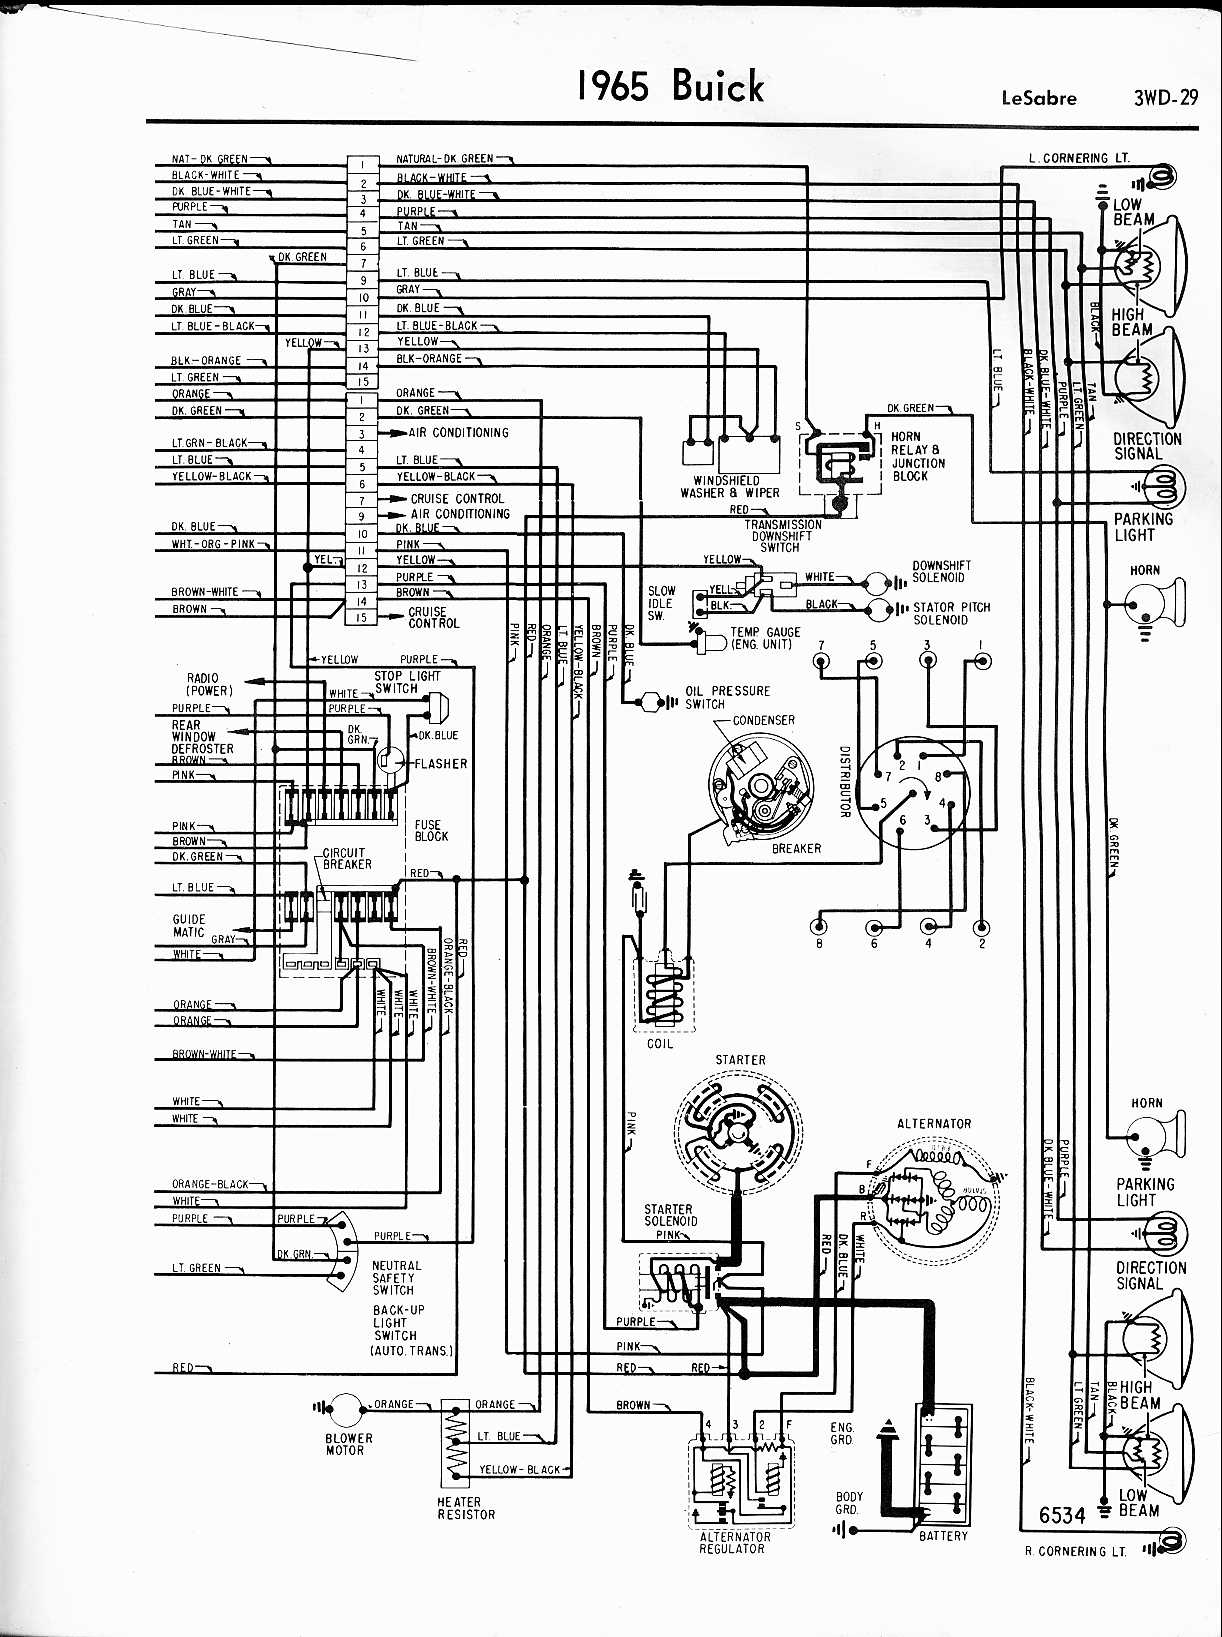 Mwirebuic Wd as well  besides Cadillac Escalade Fuel Pump Wiring Diagram Fuel Pump Connector With Regard To Trailblazer Fuel Pump Wiring Diagram moreover Honda Accord Engine Diagram Location Of Coolant Temp Sensor Hi Could You Tell Me Where The moreover Honda Accord Ex Fuse Box Diagram. on 1994 honda accord fuse box diagram